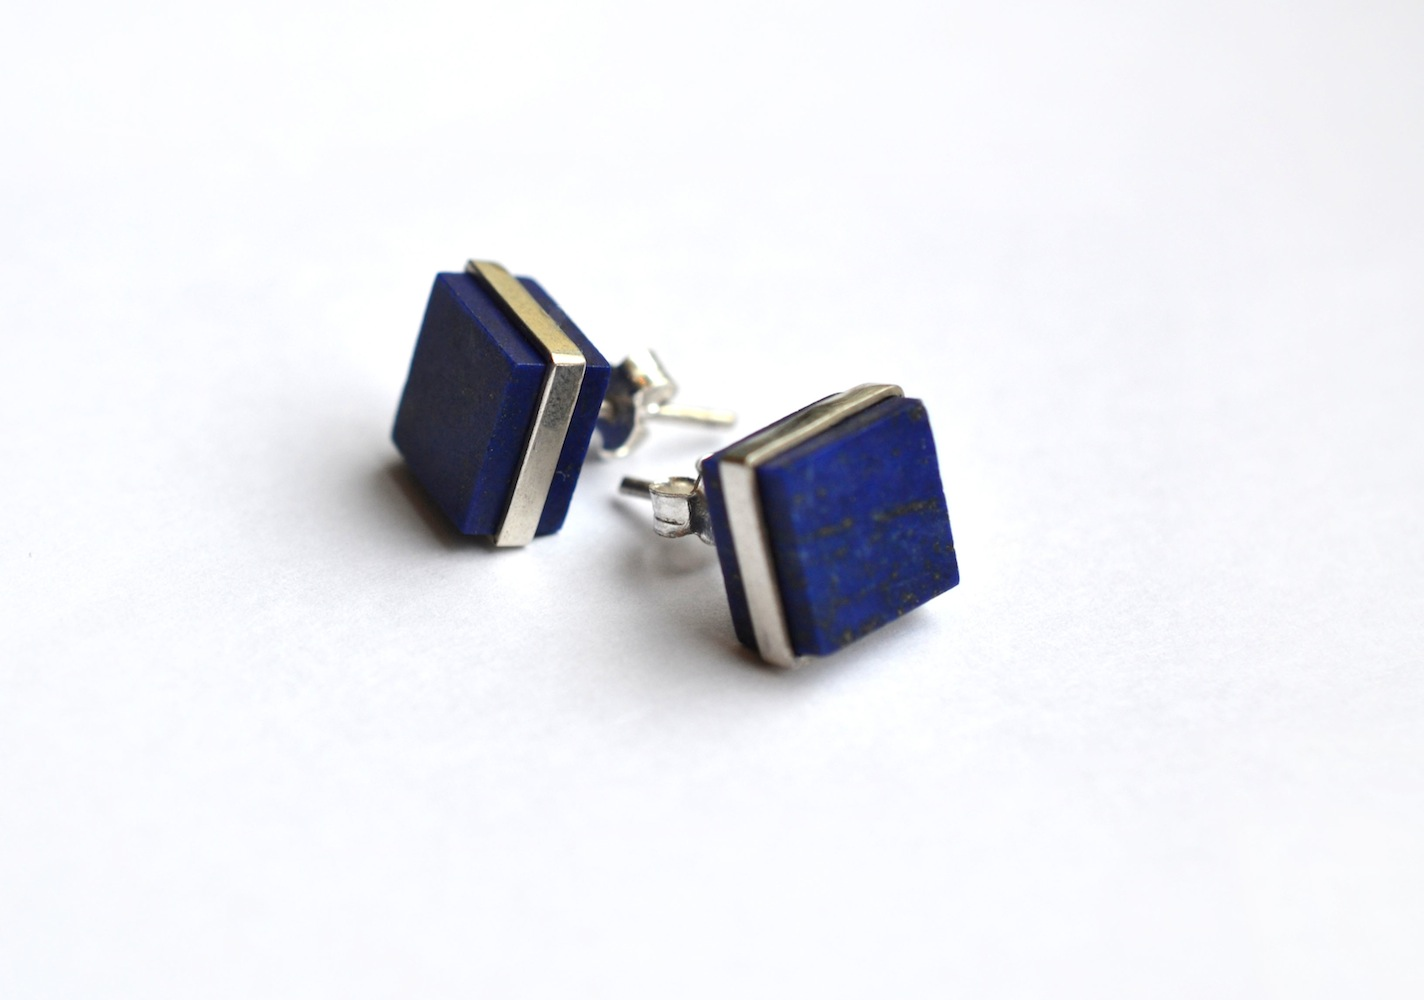 lapis lazuli and earrings gold raleigh stud quercus studs